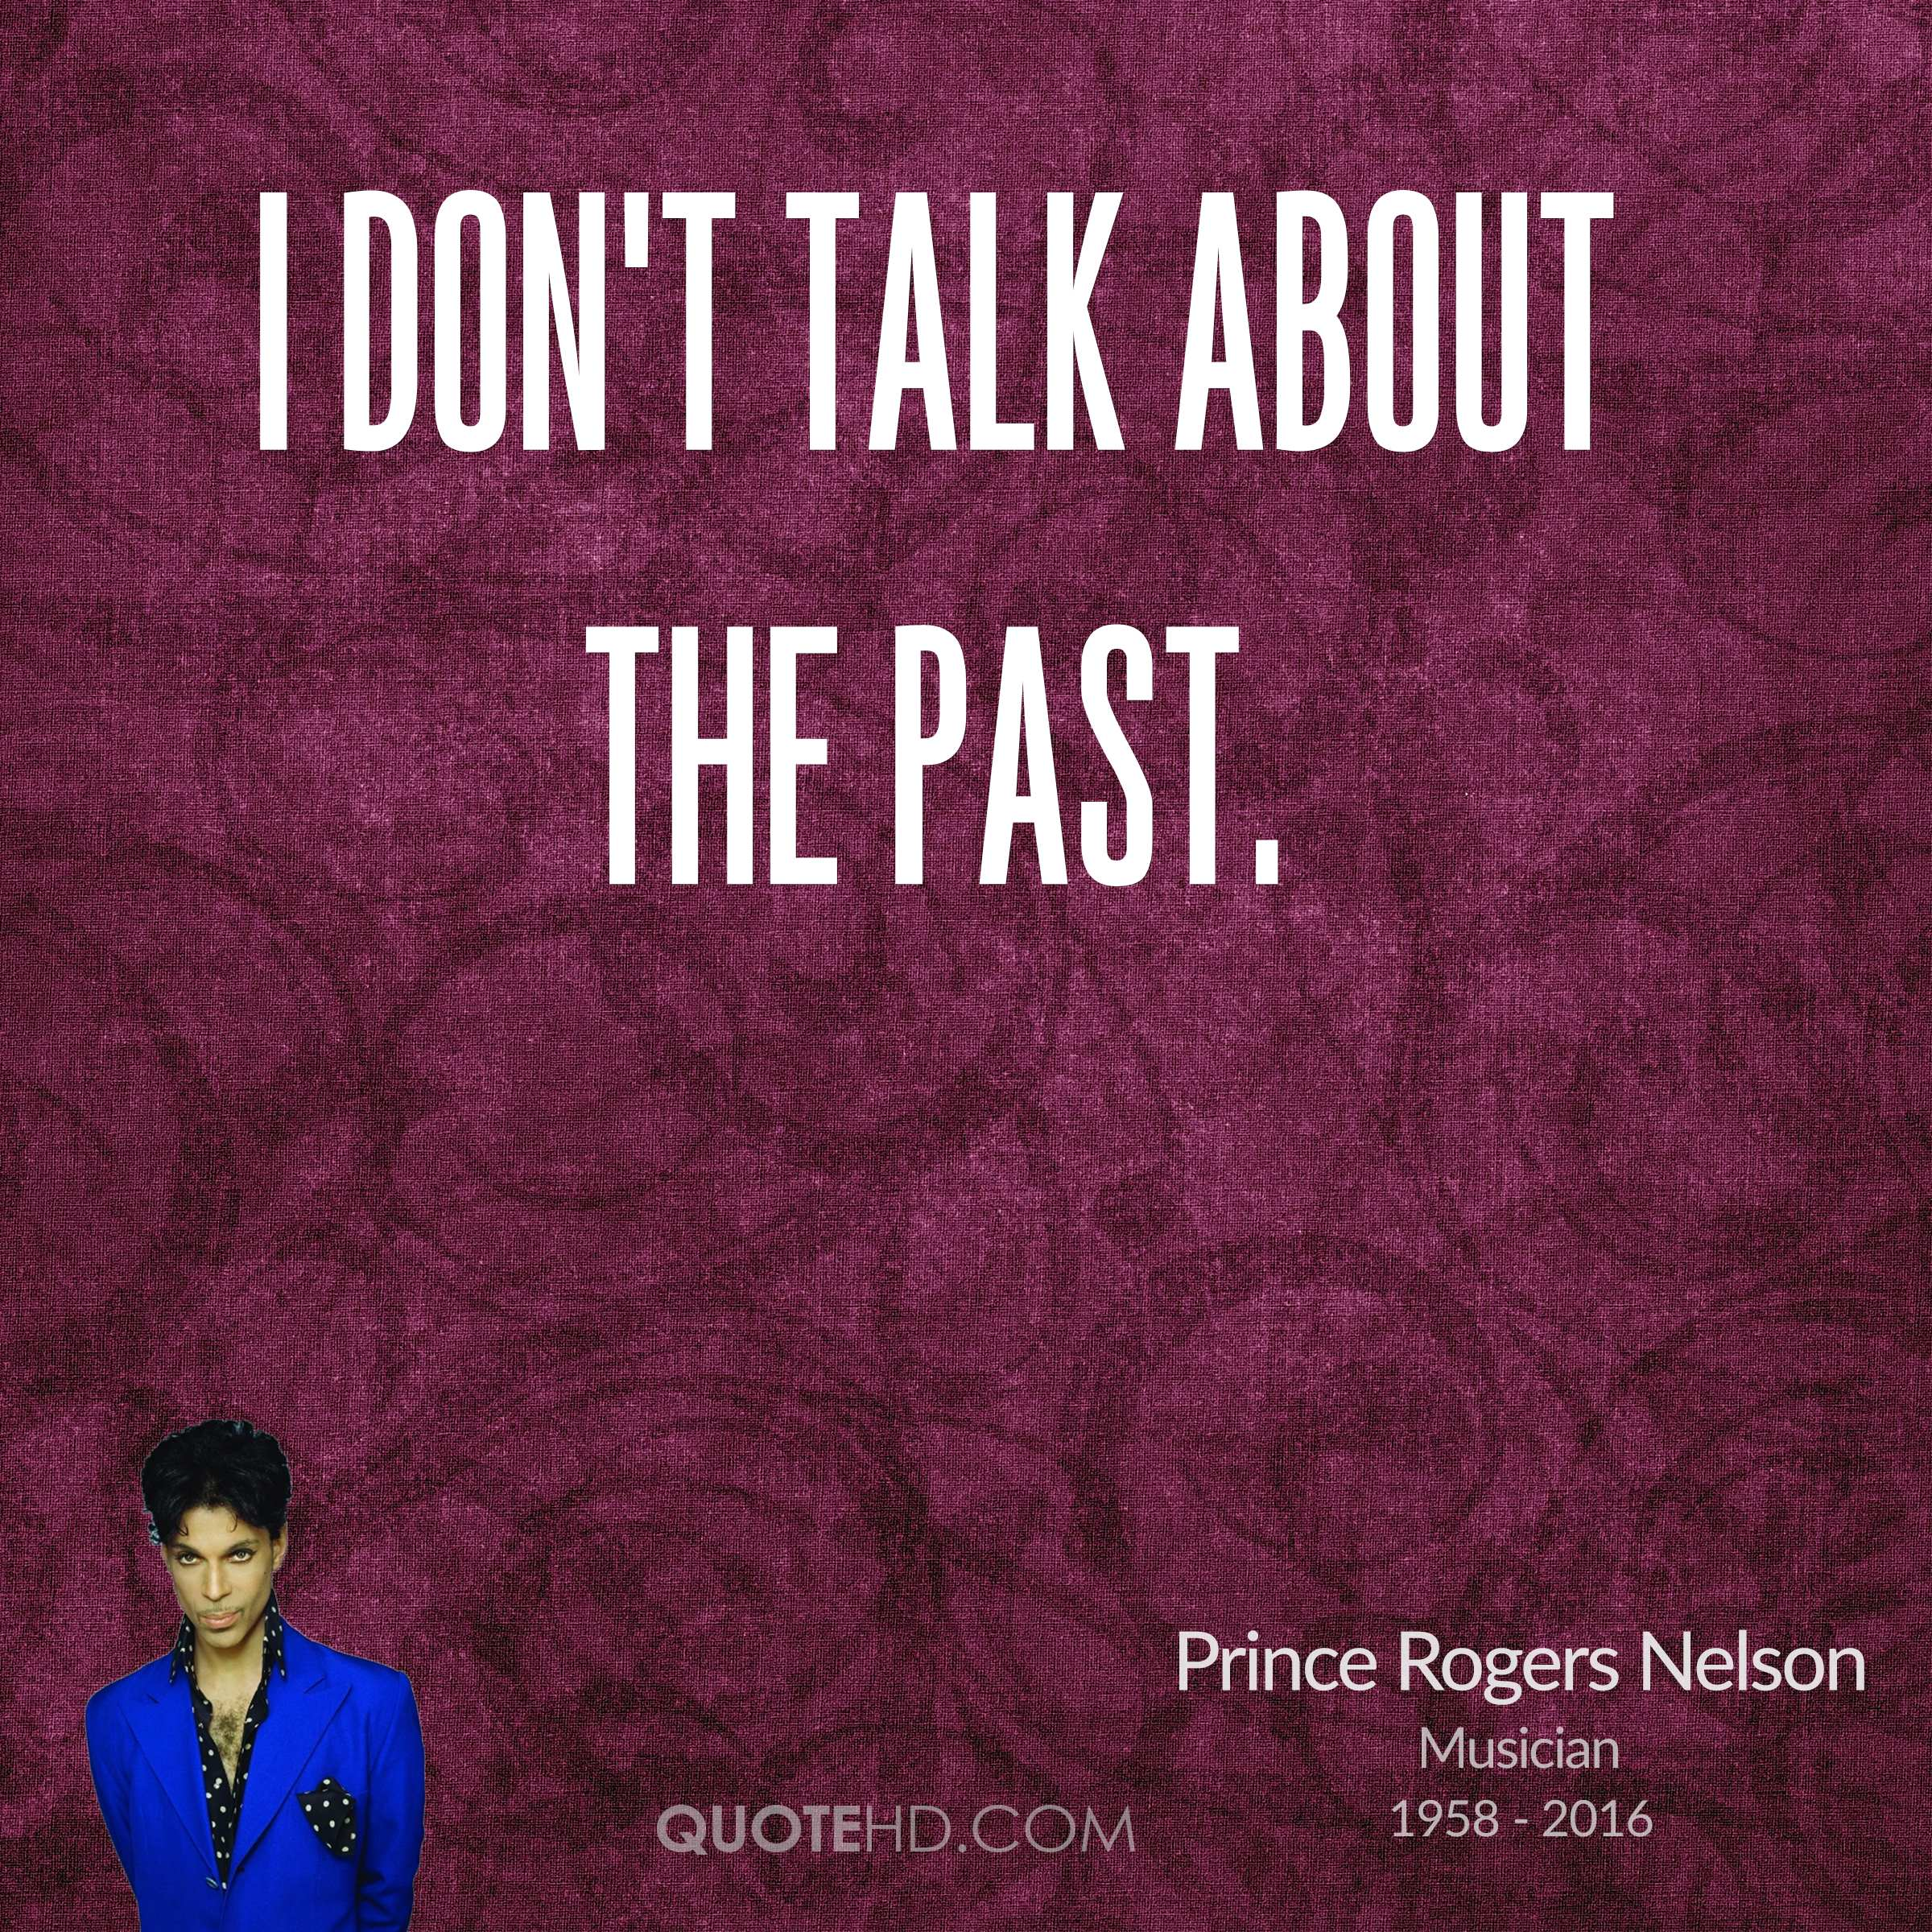 I don't talk about the past.